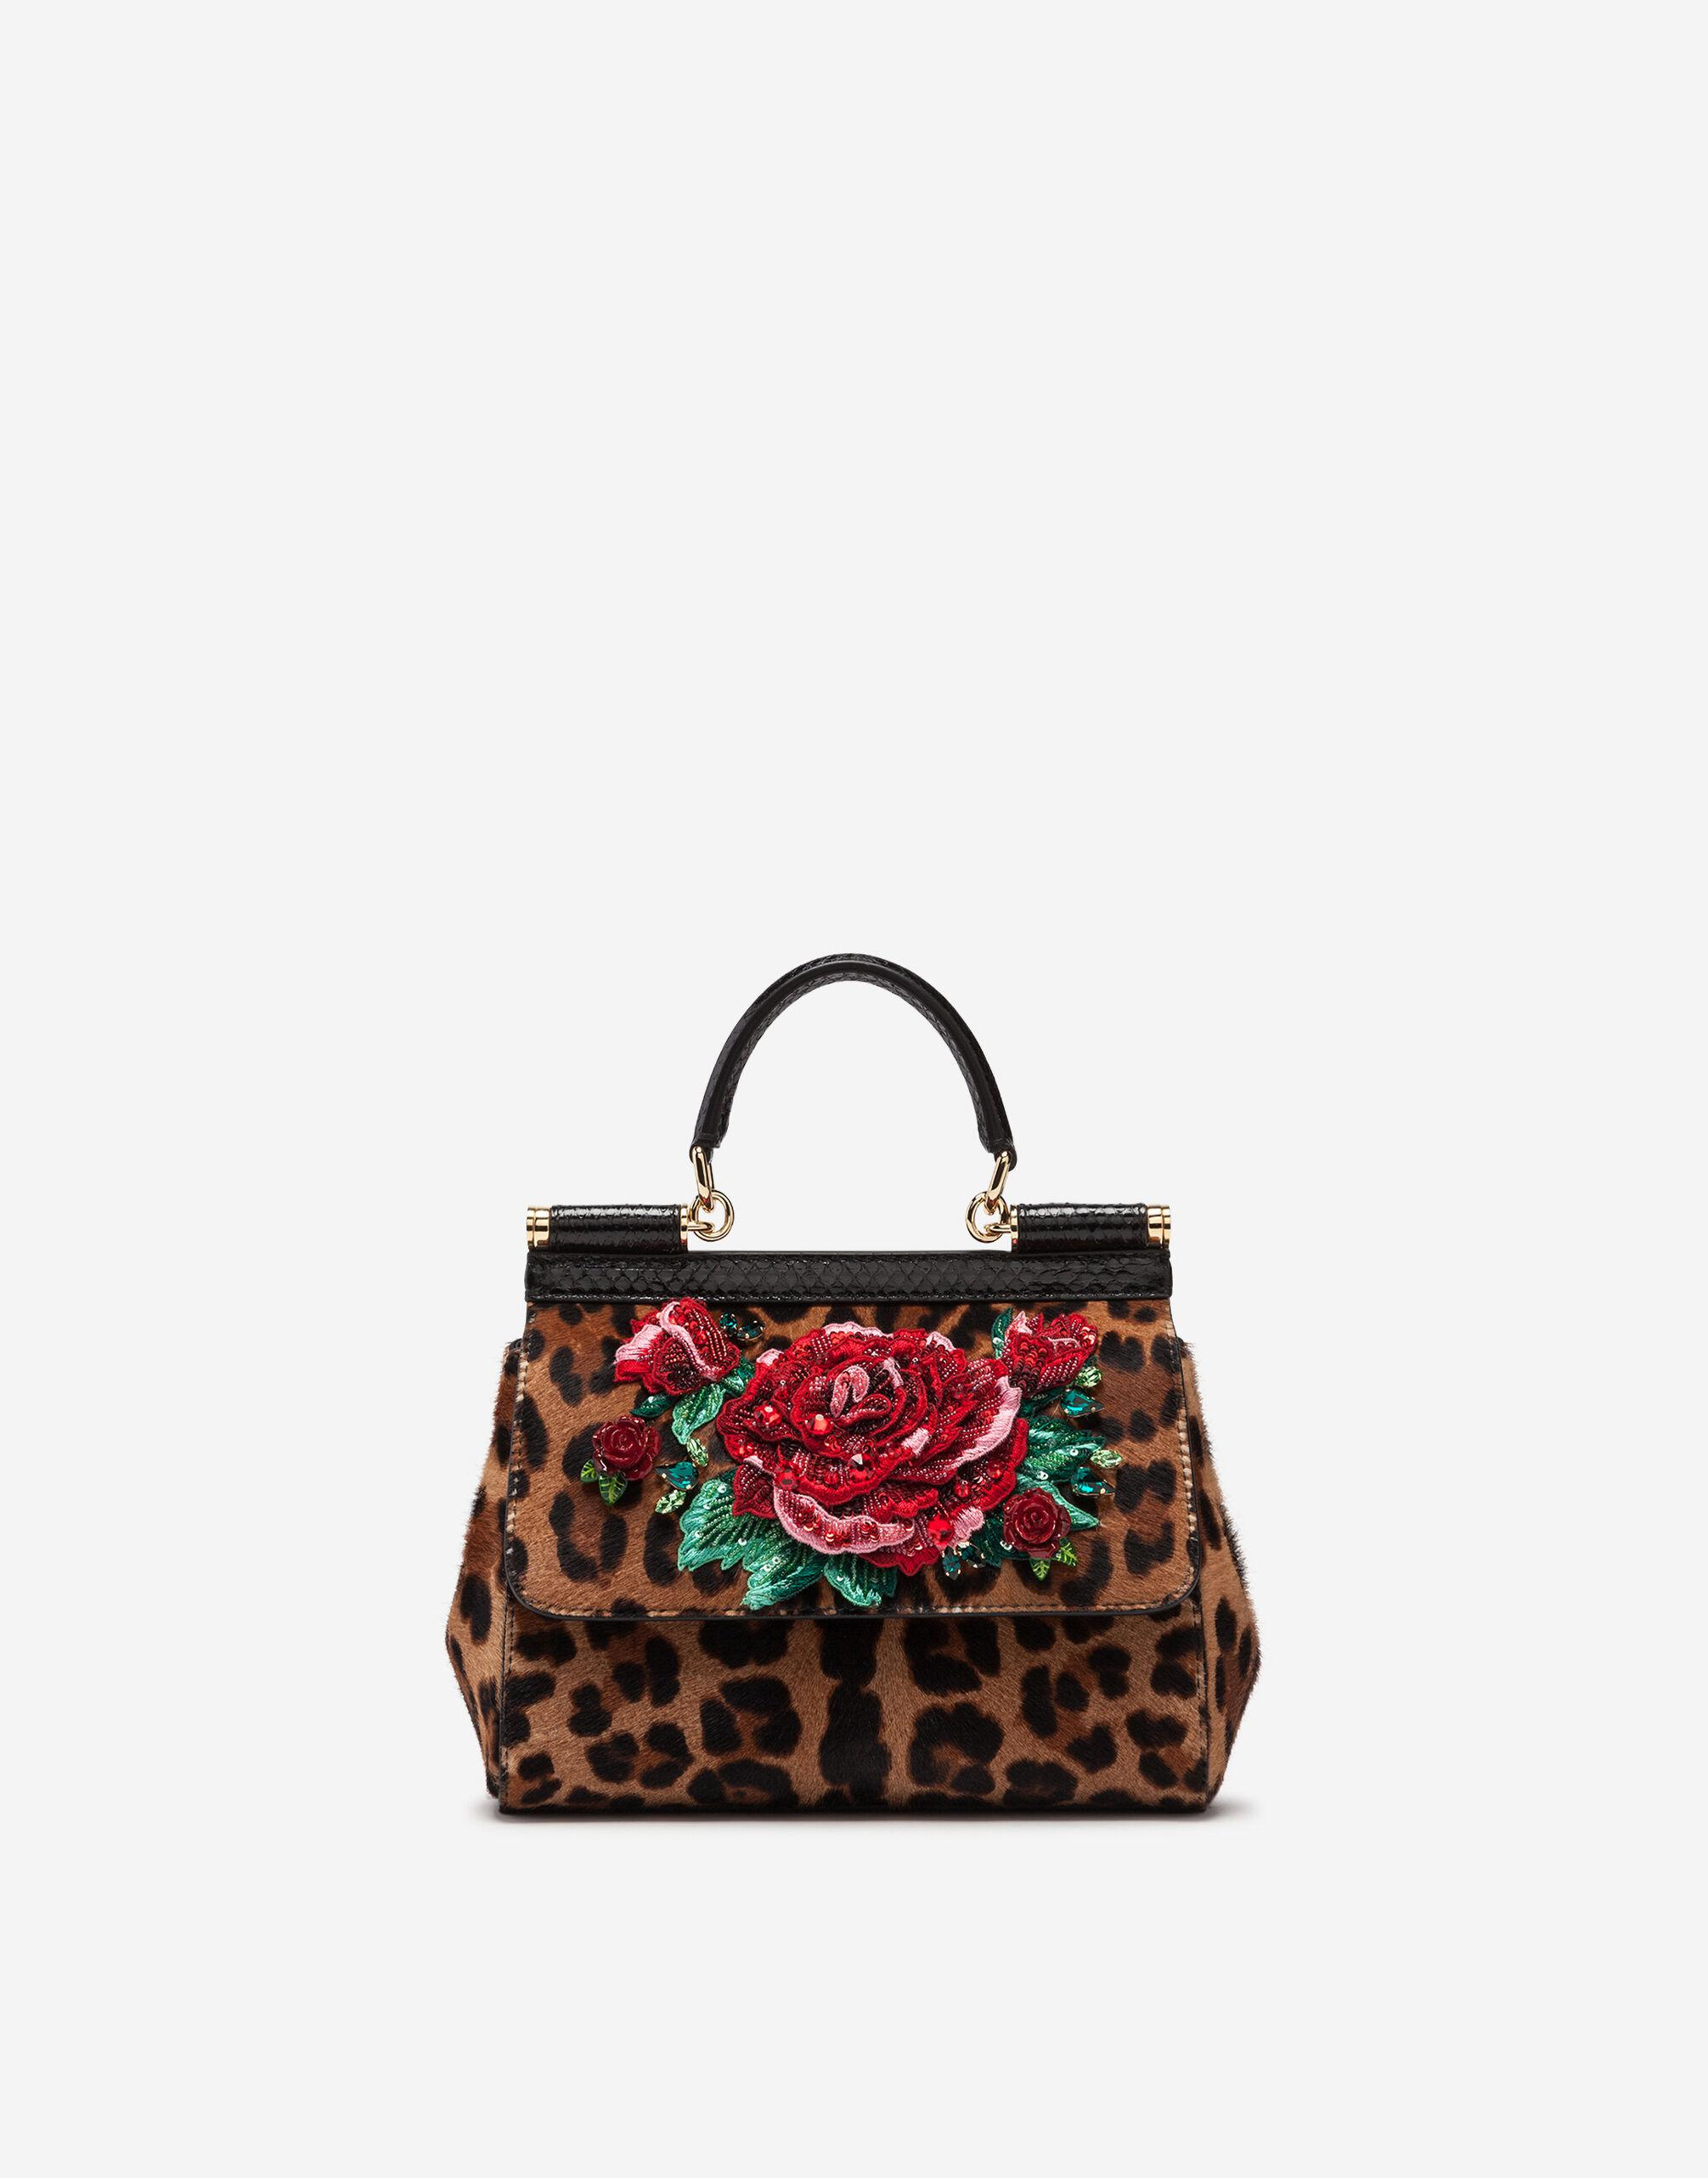 Medium Sicily bag in leopard print embroidered pony